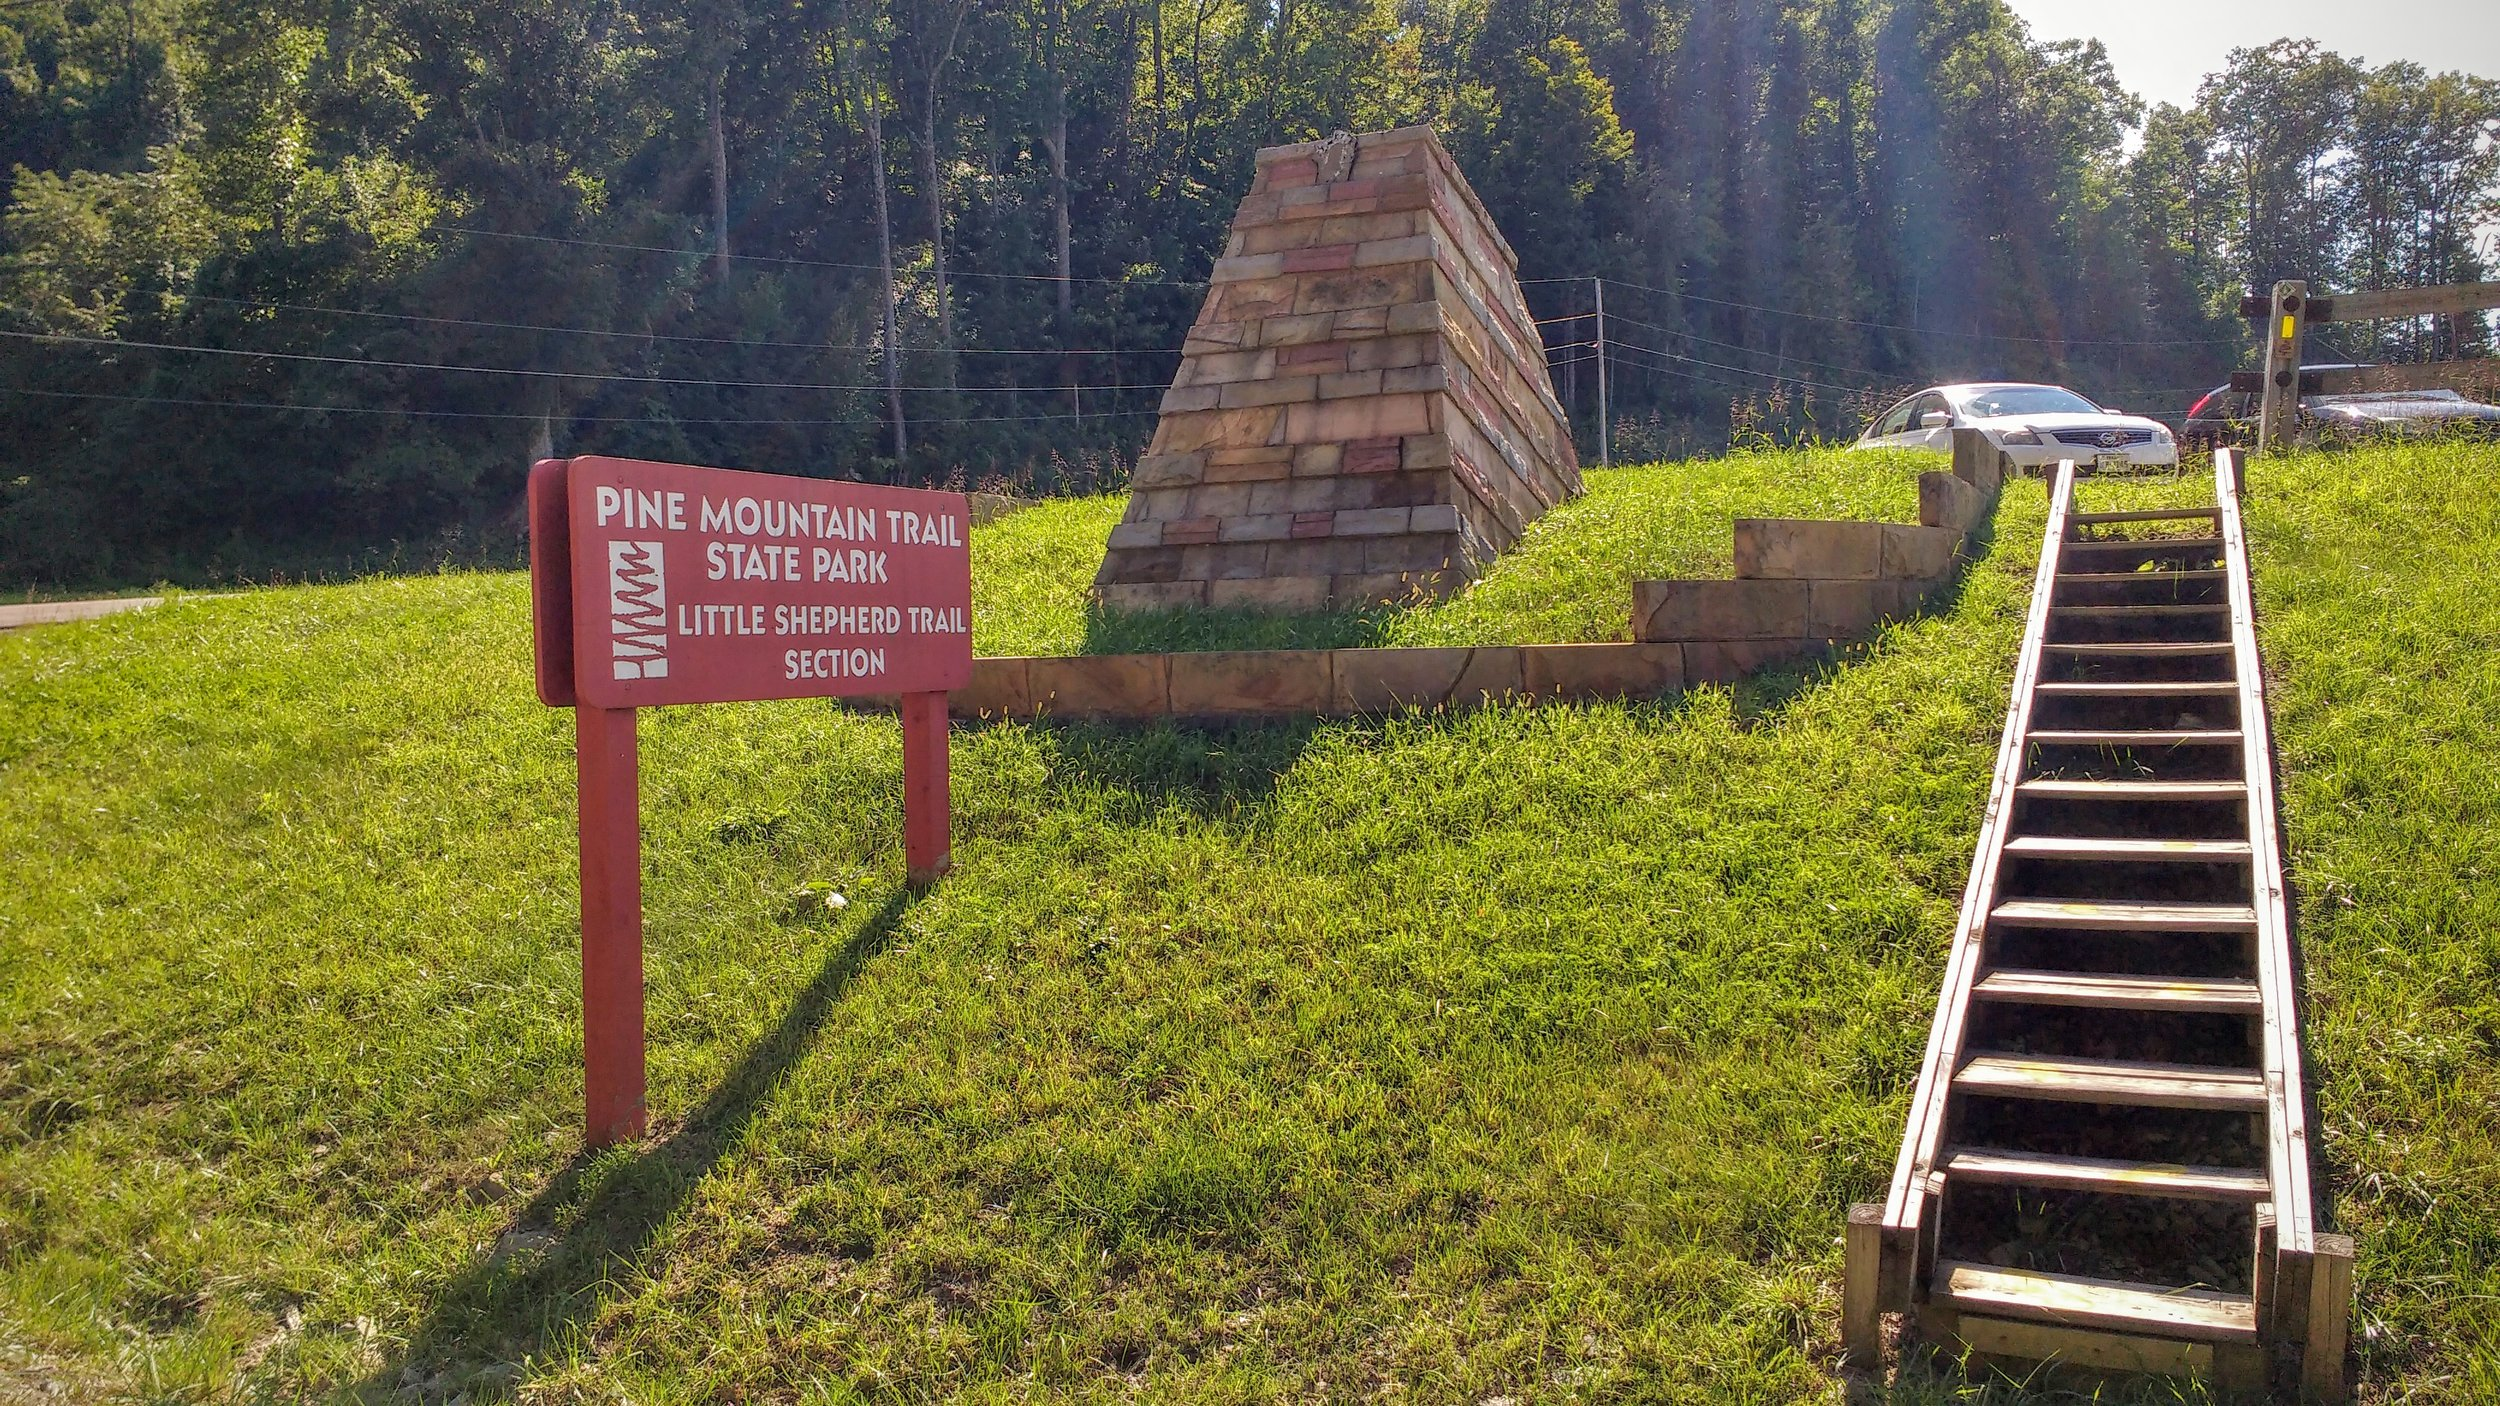 Steps to trailhead parking at the junction of Pine Mountain Trail and Little Shepherd Trail - both of which are part of the Great Eastern Trail